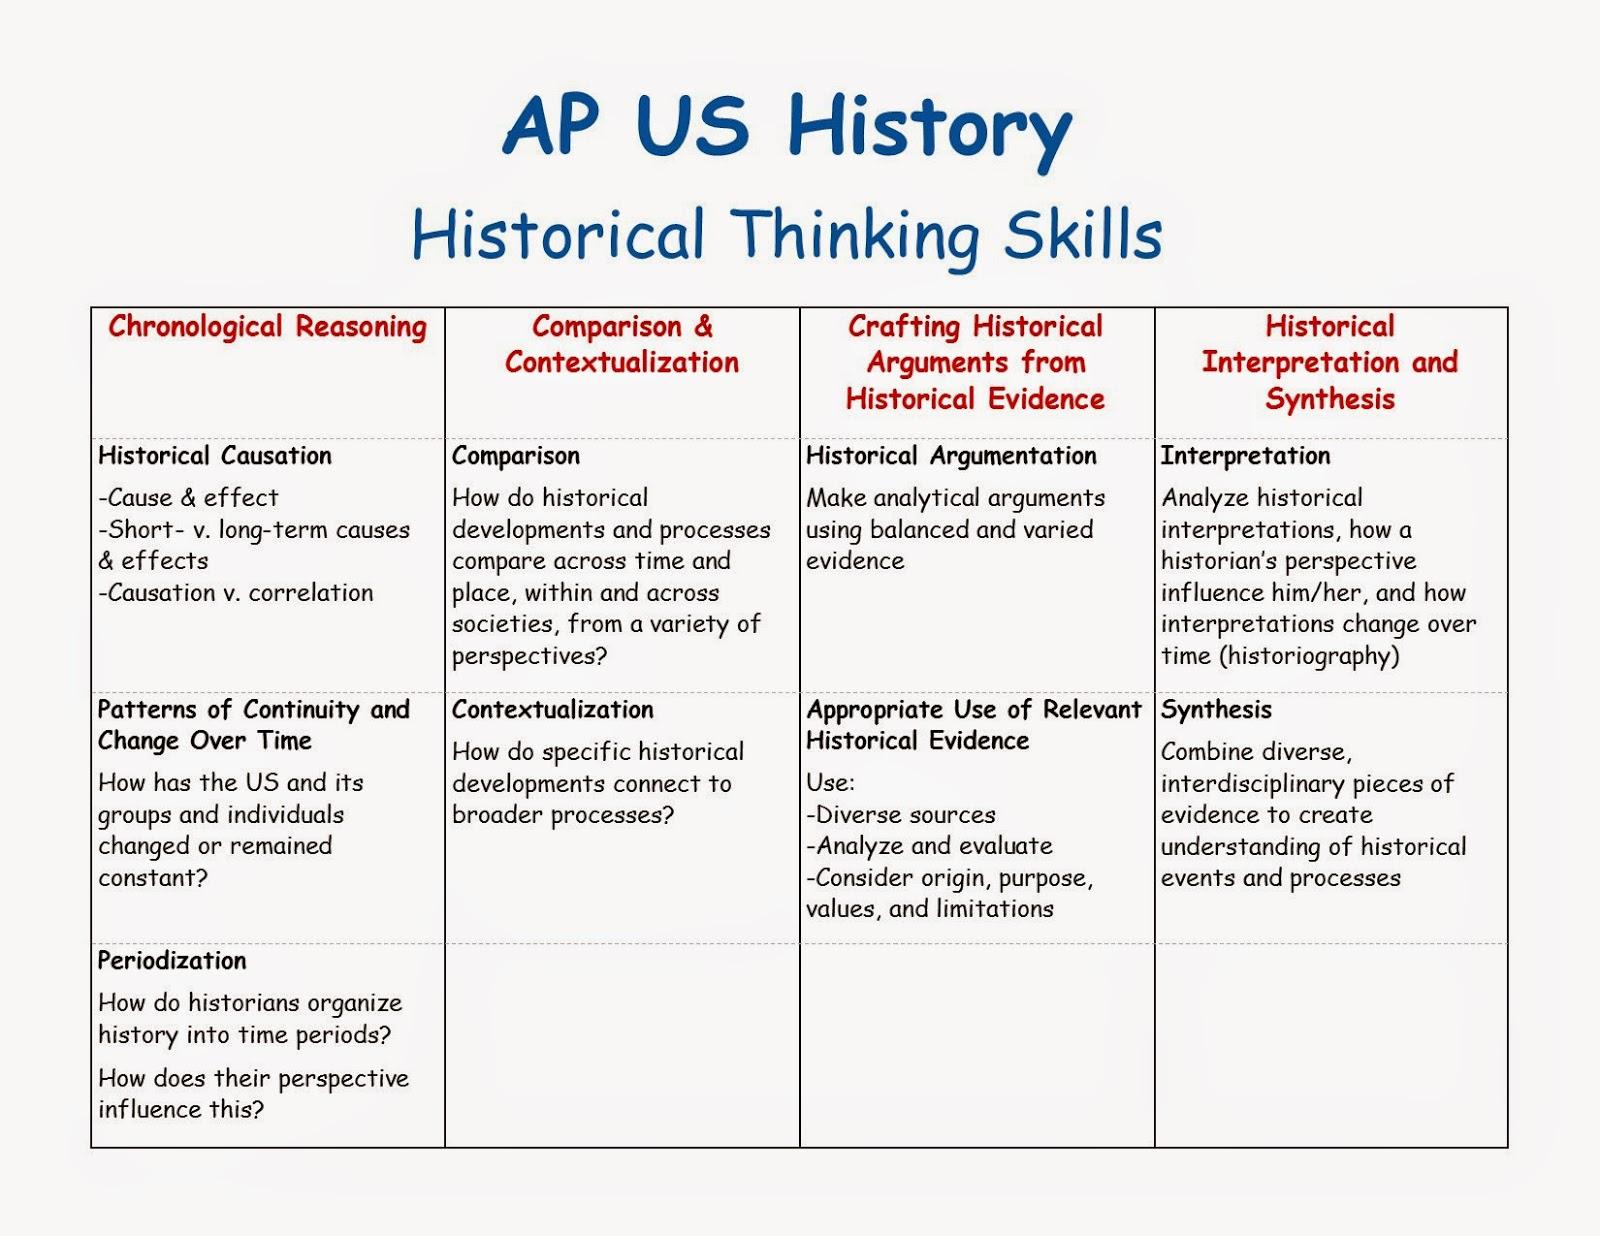 ap us history essay outlines Essay about chapter 11 outline and summary ap european history essay about chapter 11 outline and summary ap european history presidential outlines ap us history.